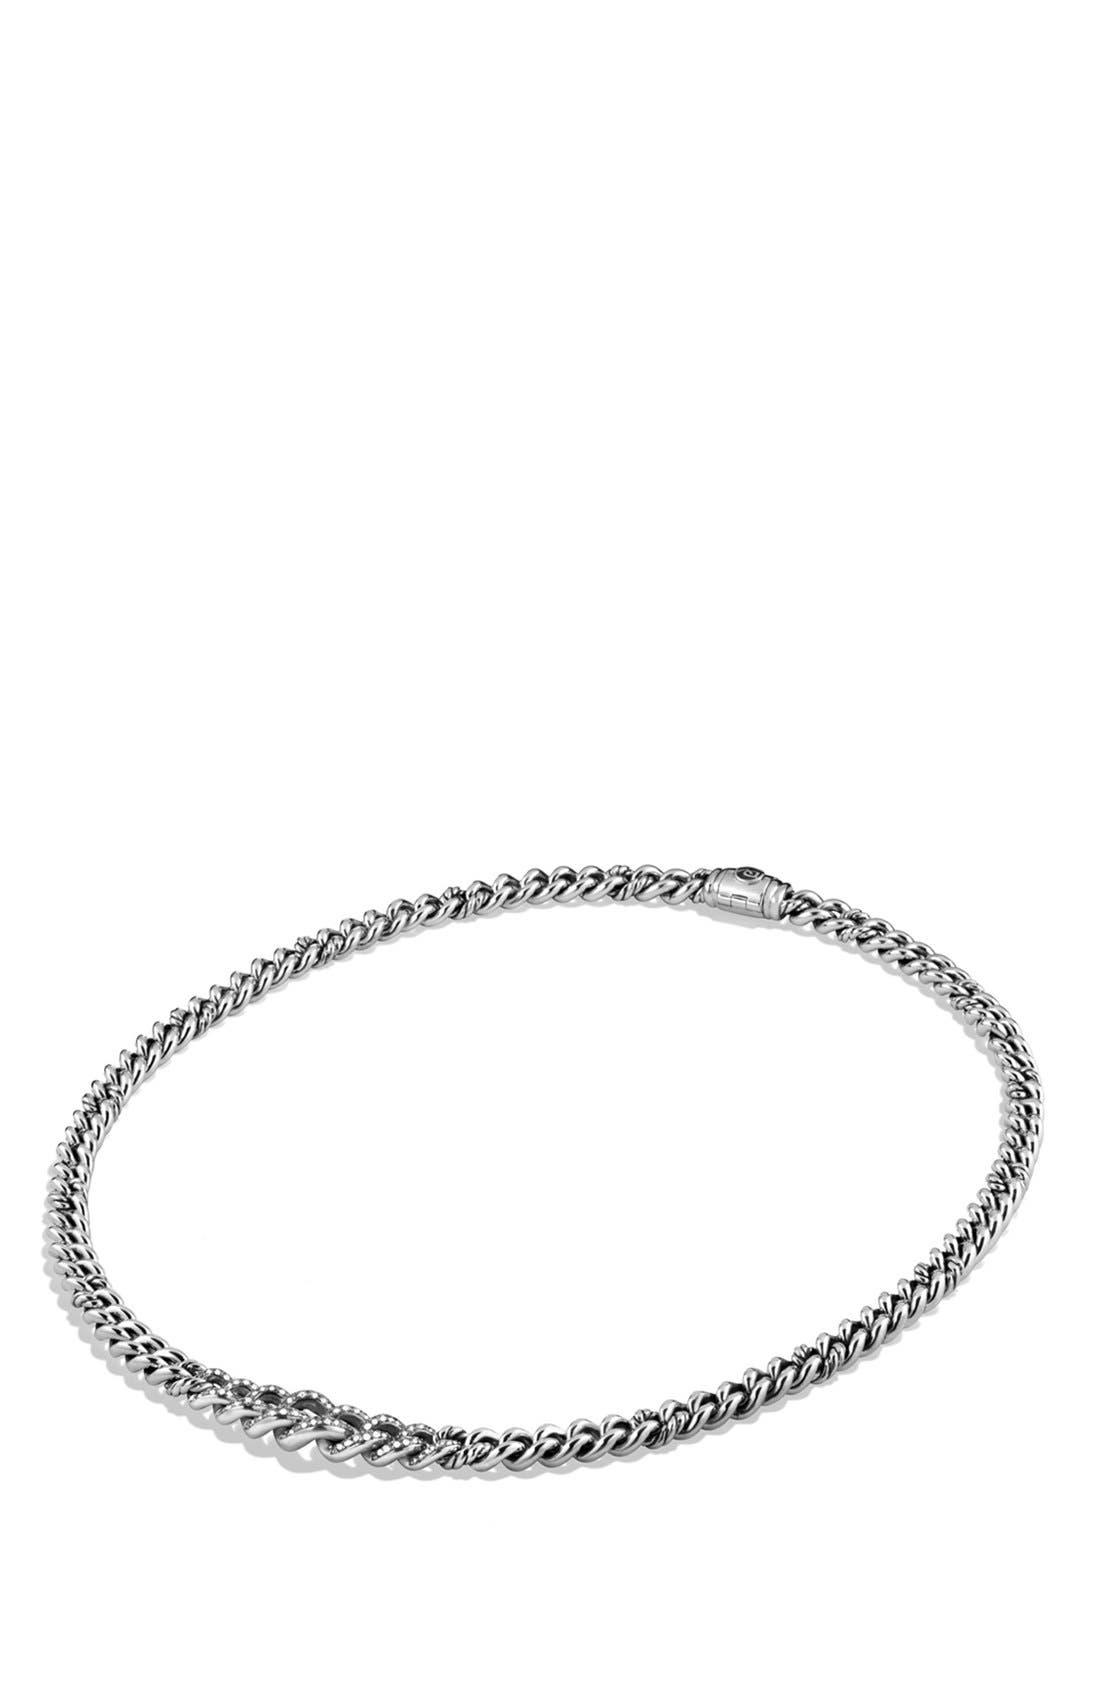 Alternate Image 2  - David Yurman 'Petite Pavé' Curb Chain Necklace with Diamonds